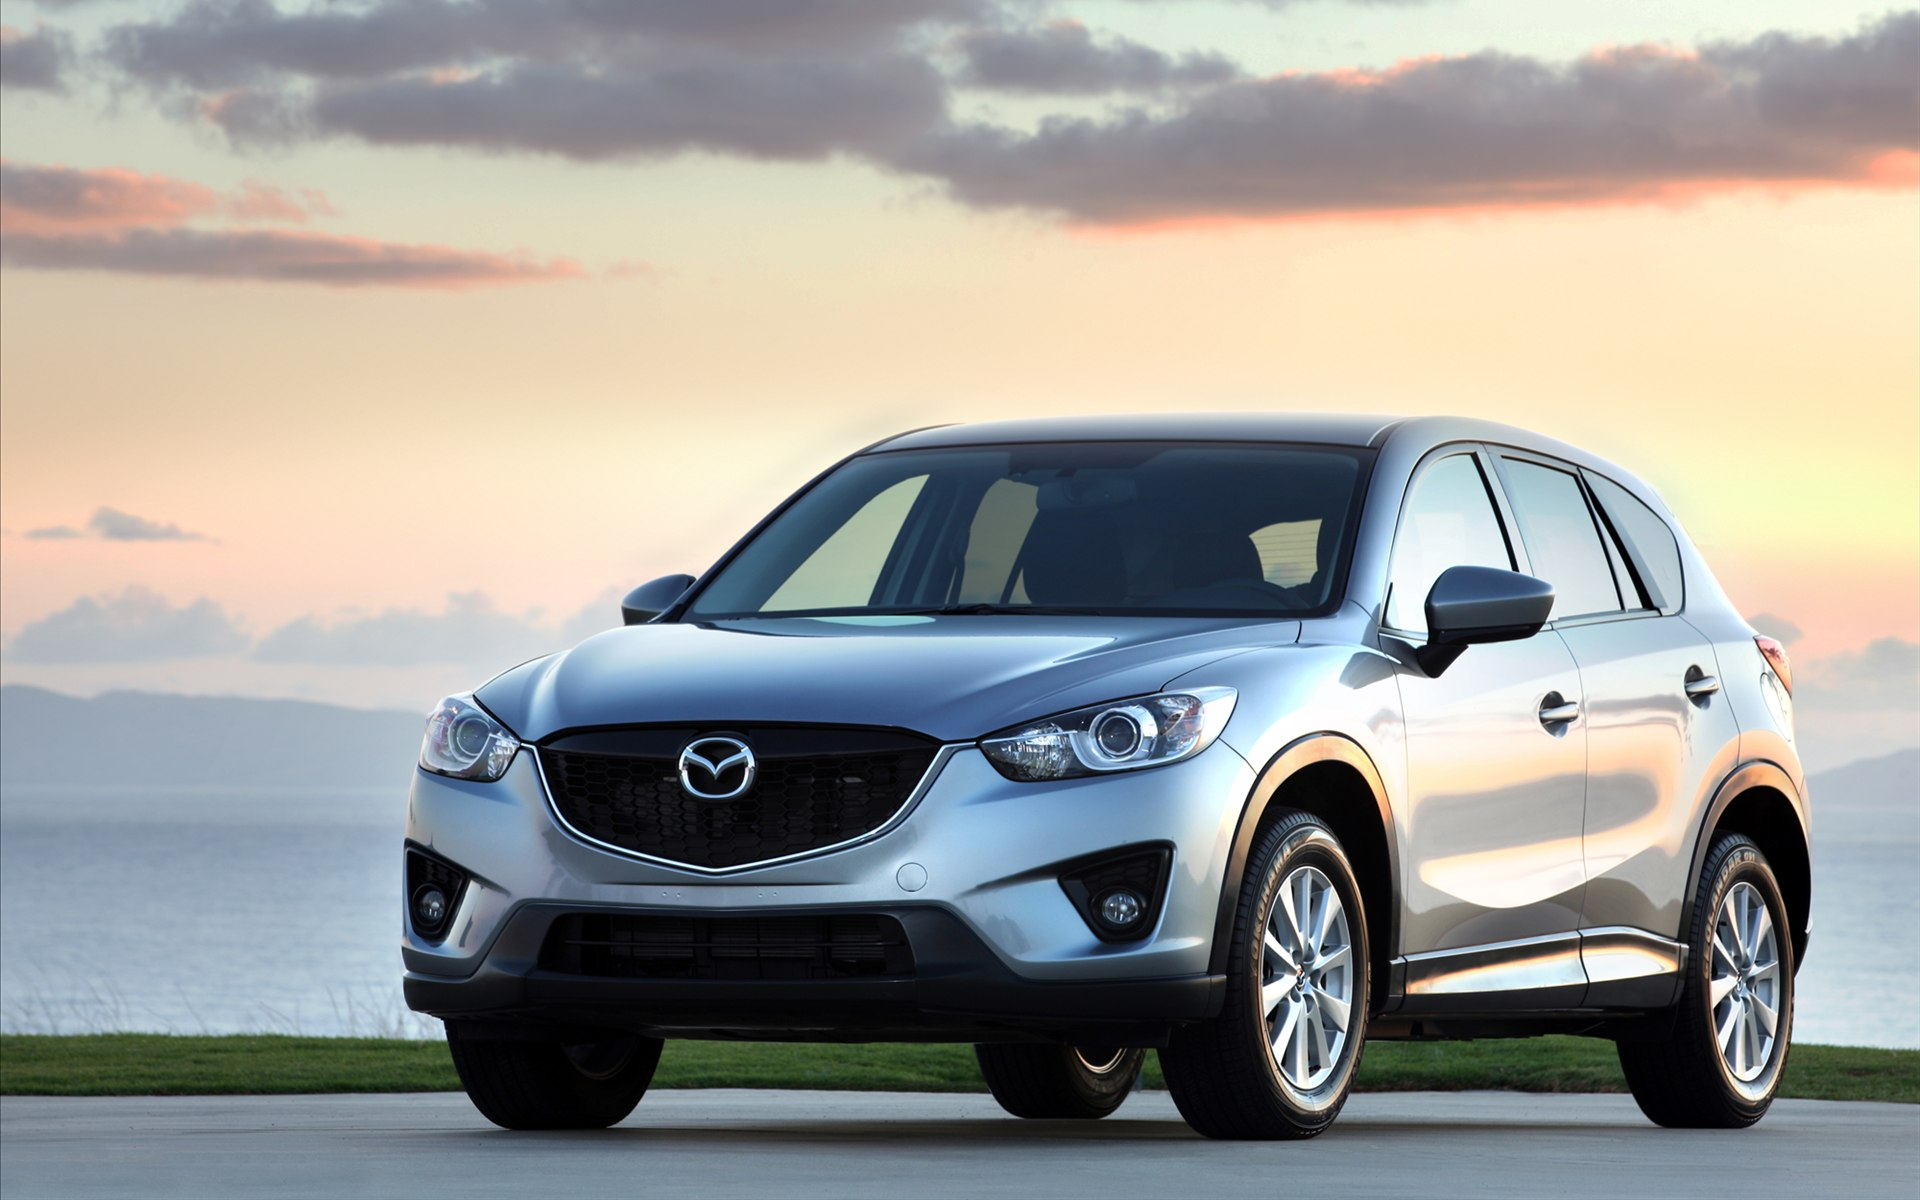 1920x1200 - Mazda CX-5 Wallpapers 9